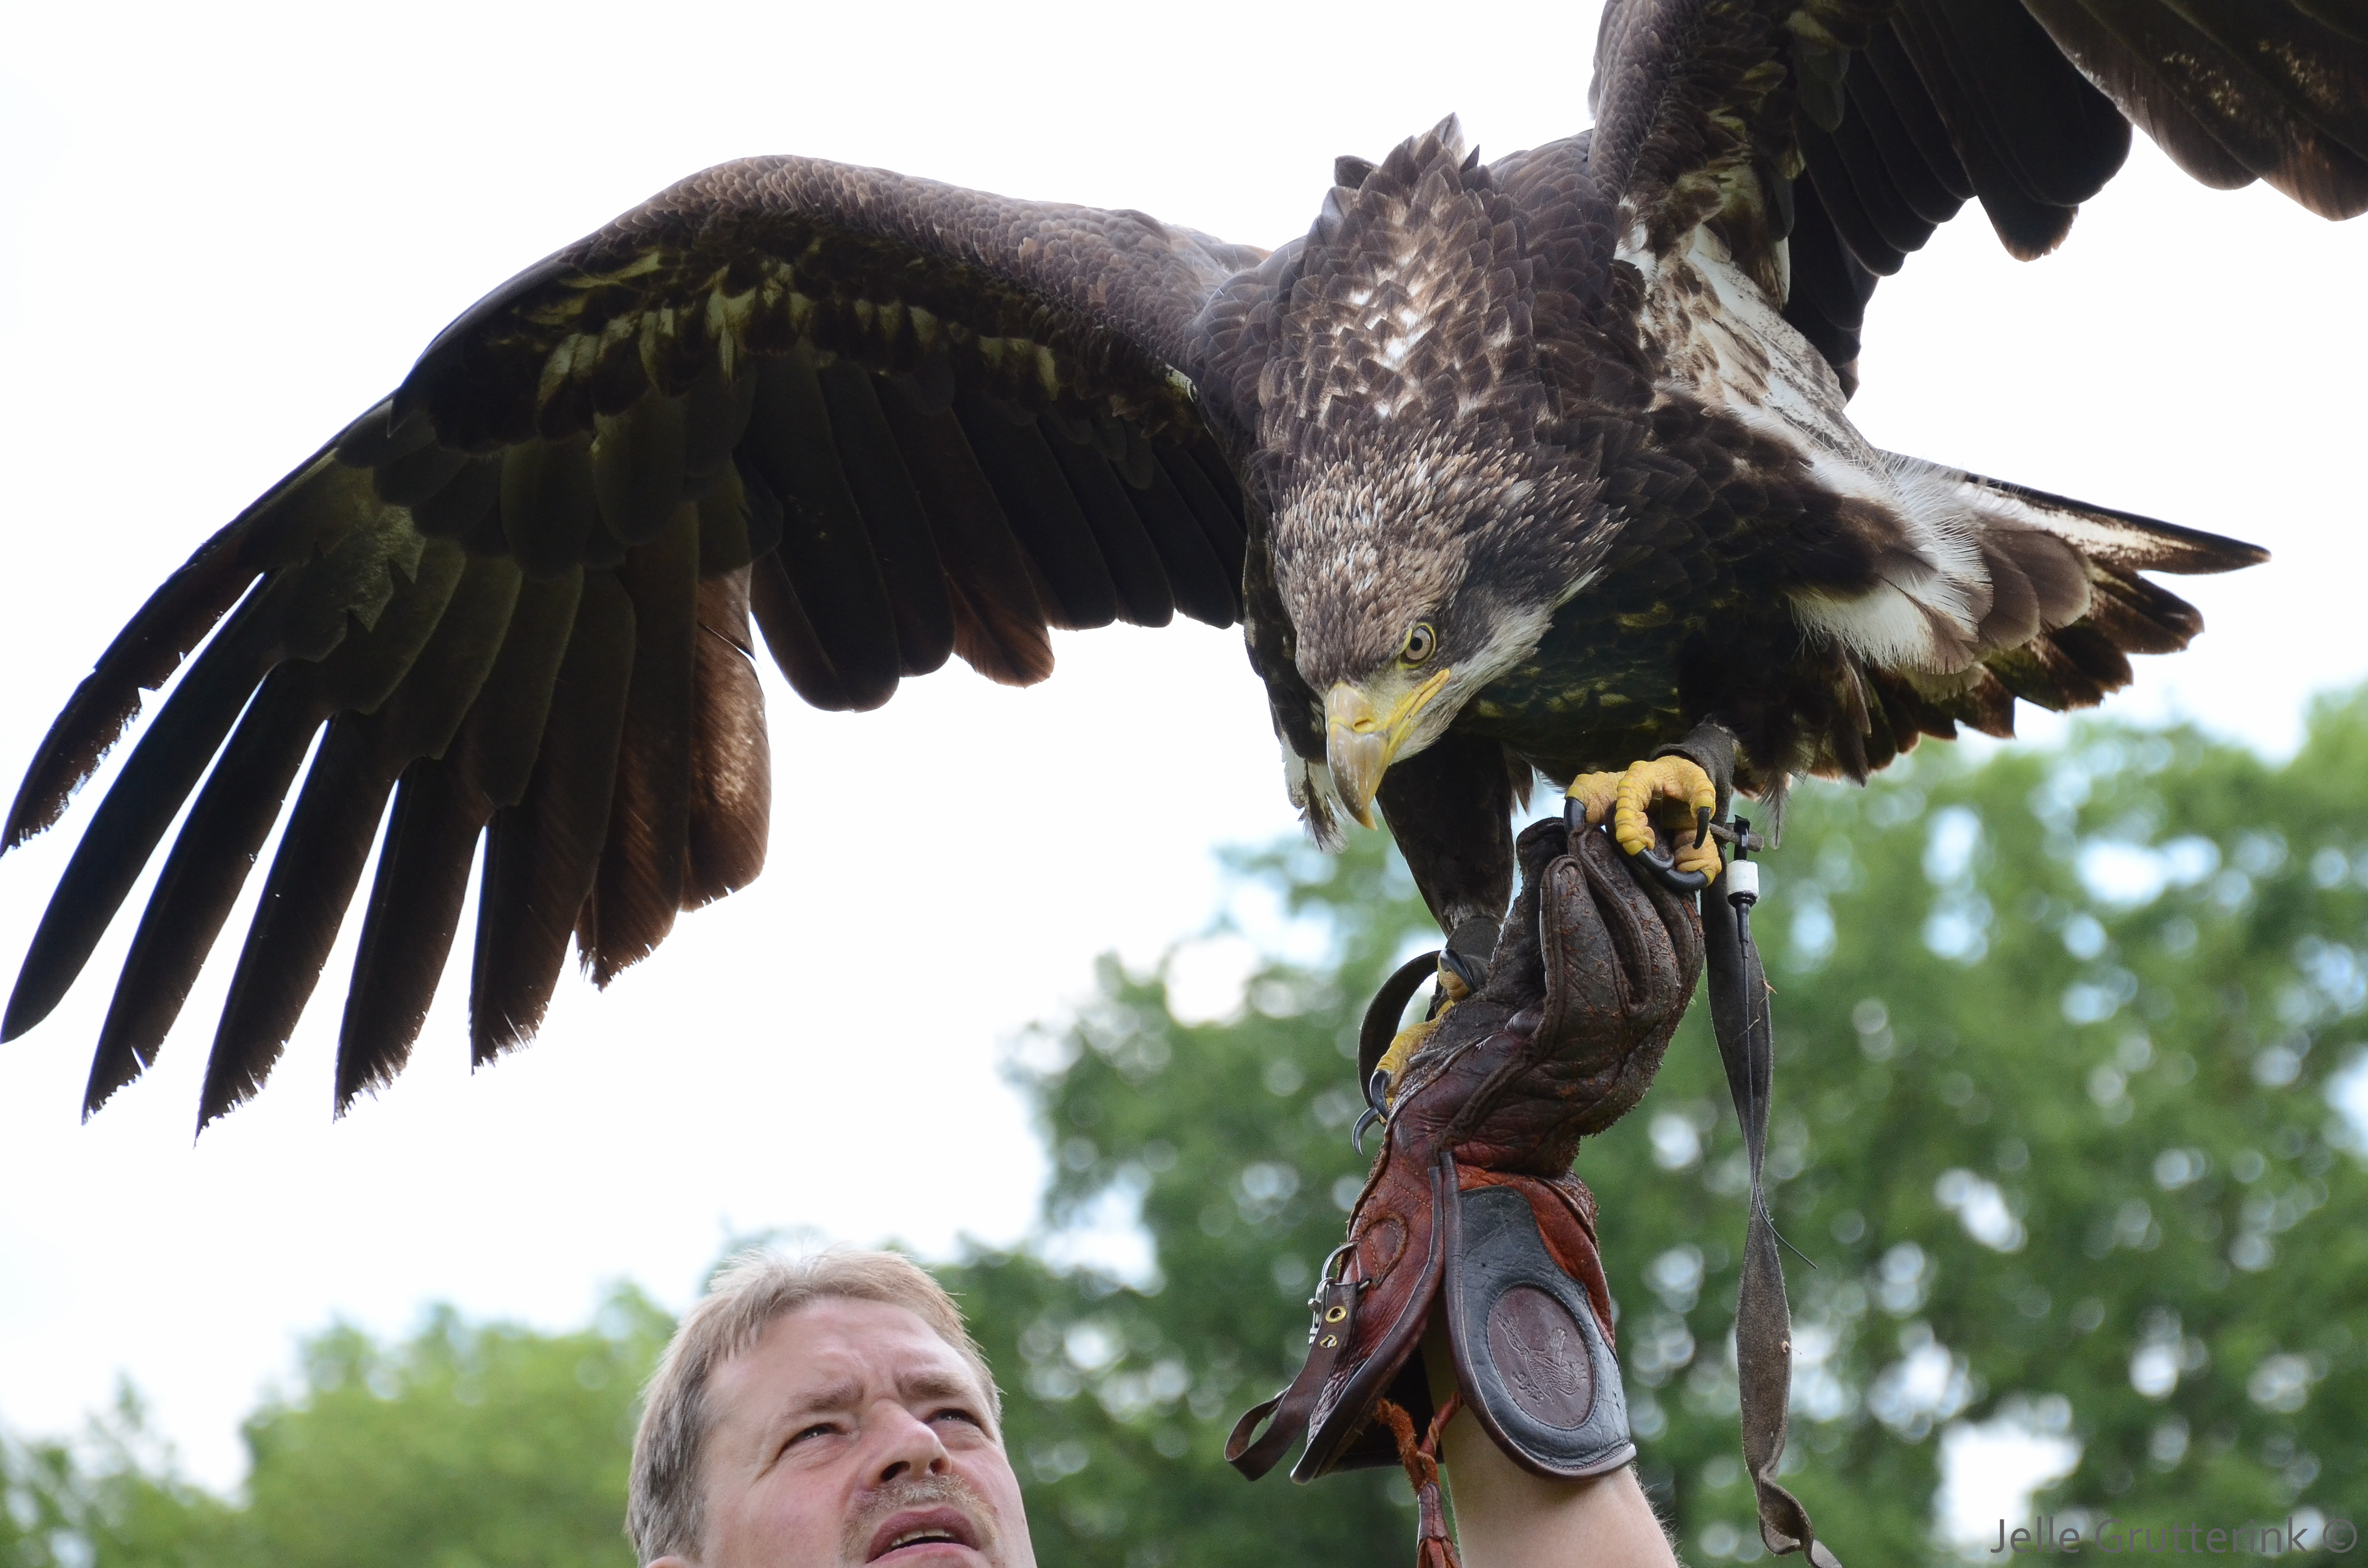 Is a Bird in the Hand Worth Two in the Bush? | Psychology Today